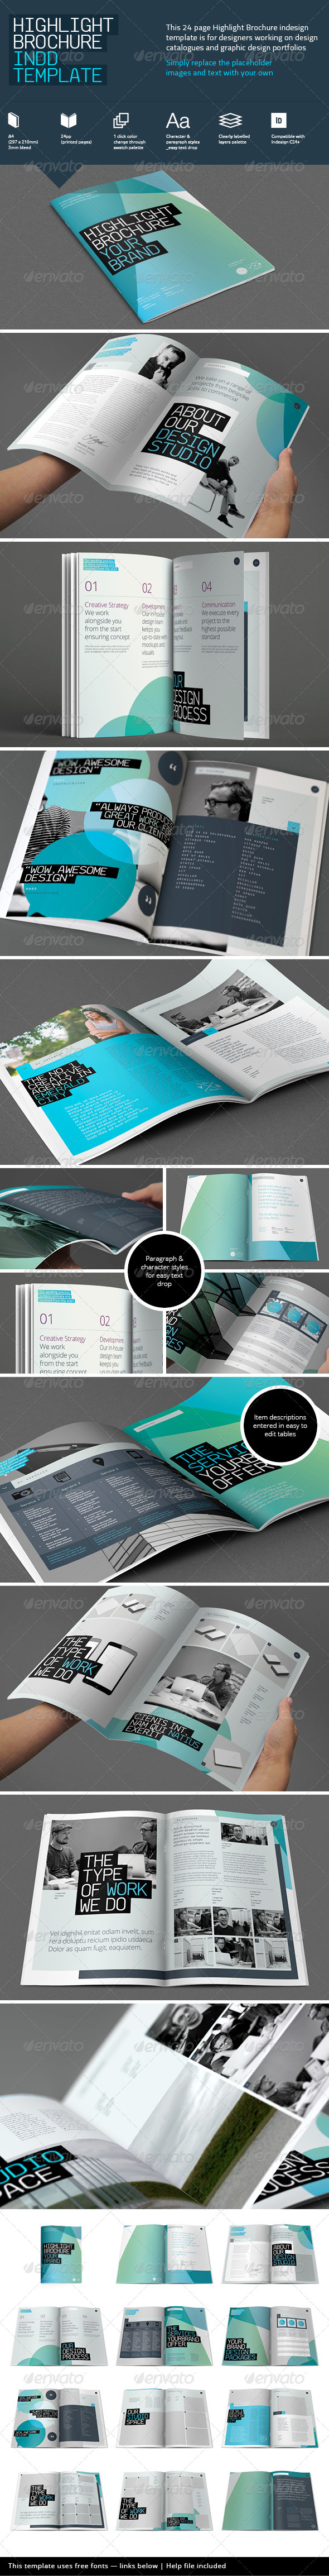 Highlight Brochure Template - Brochures Print Templates